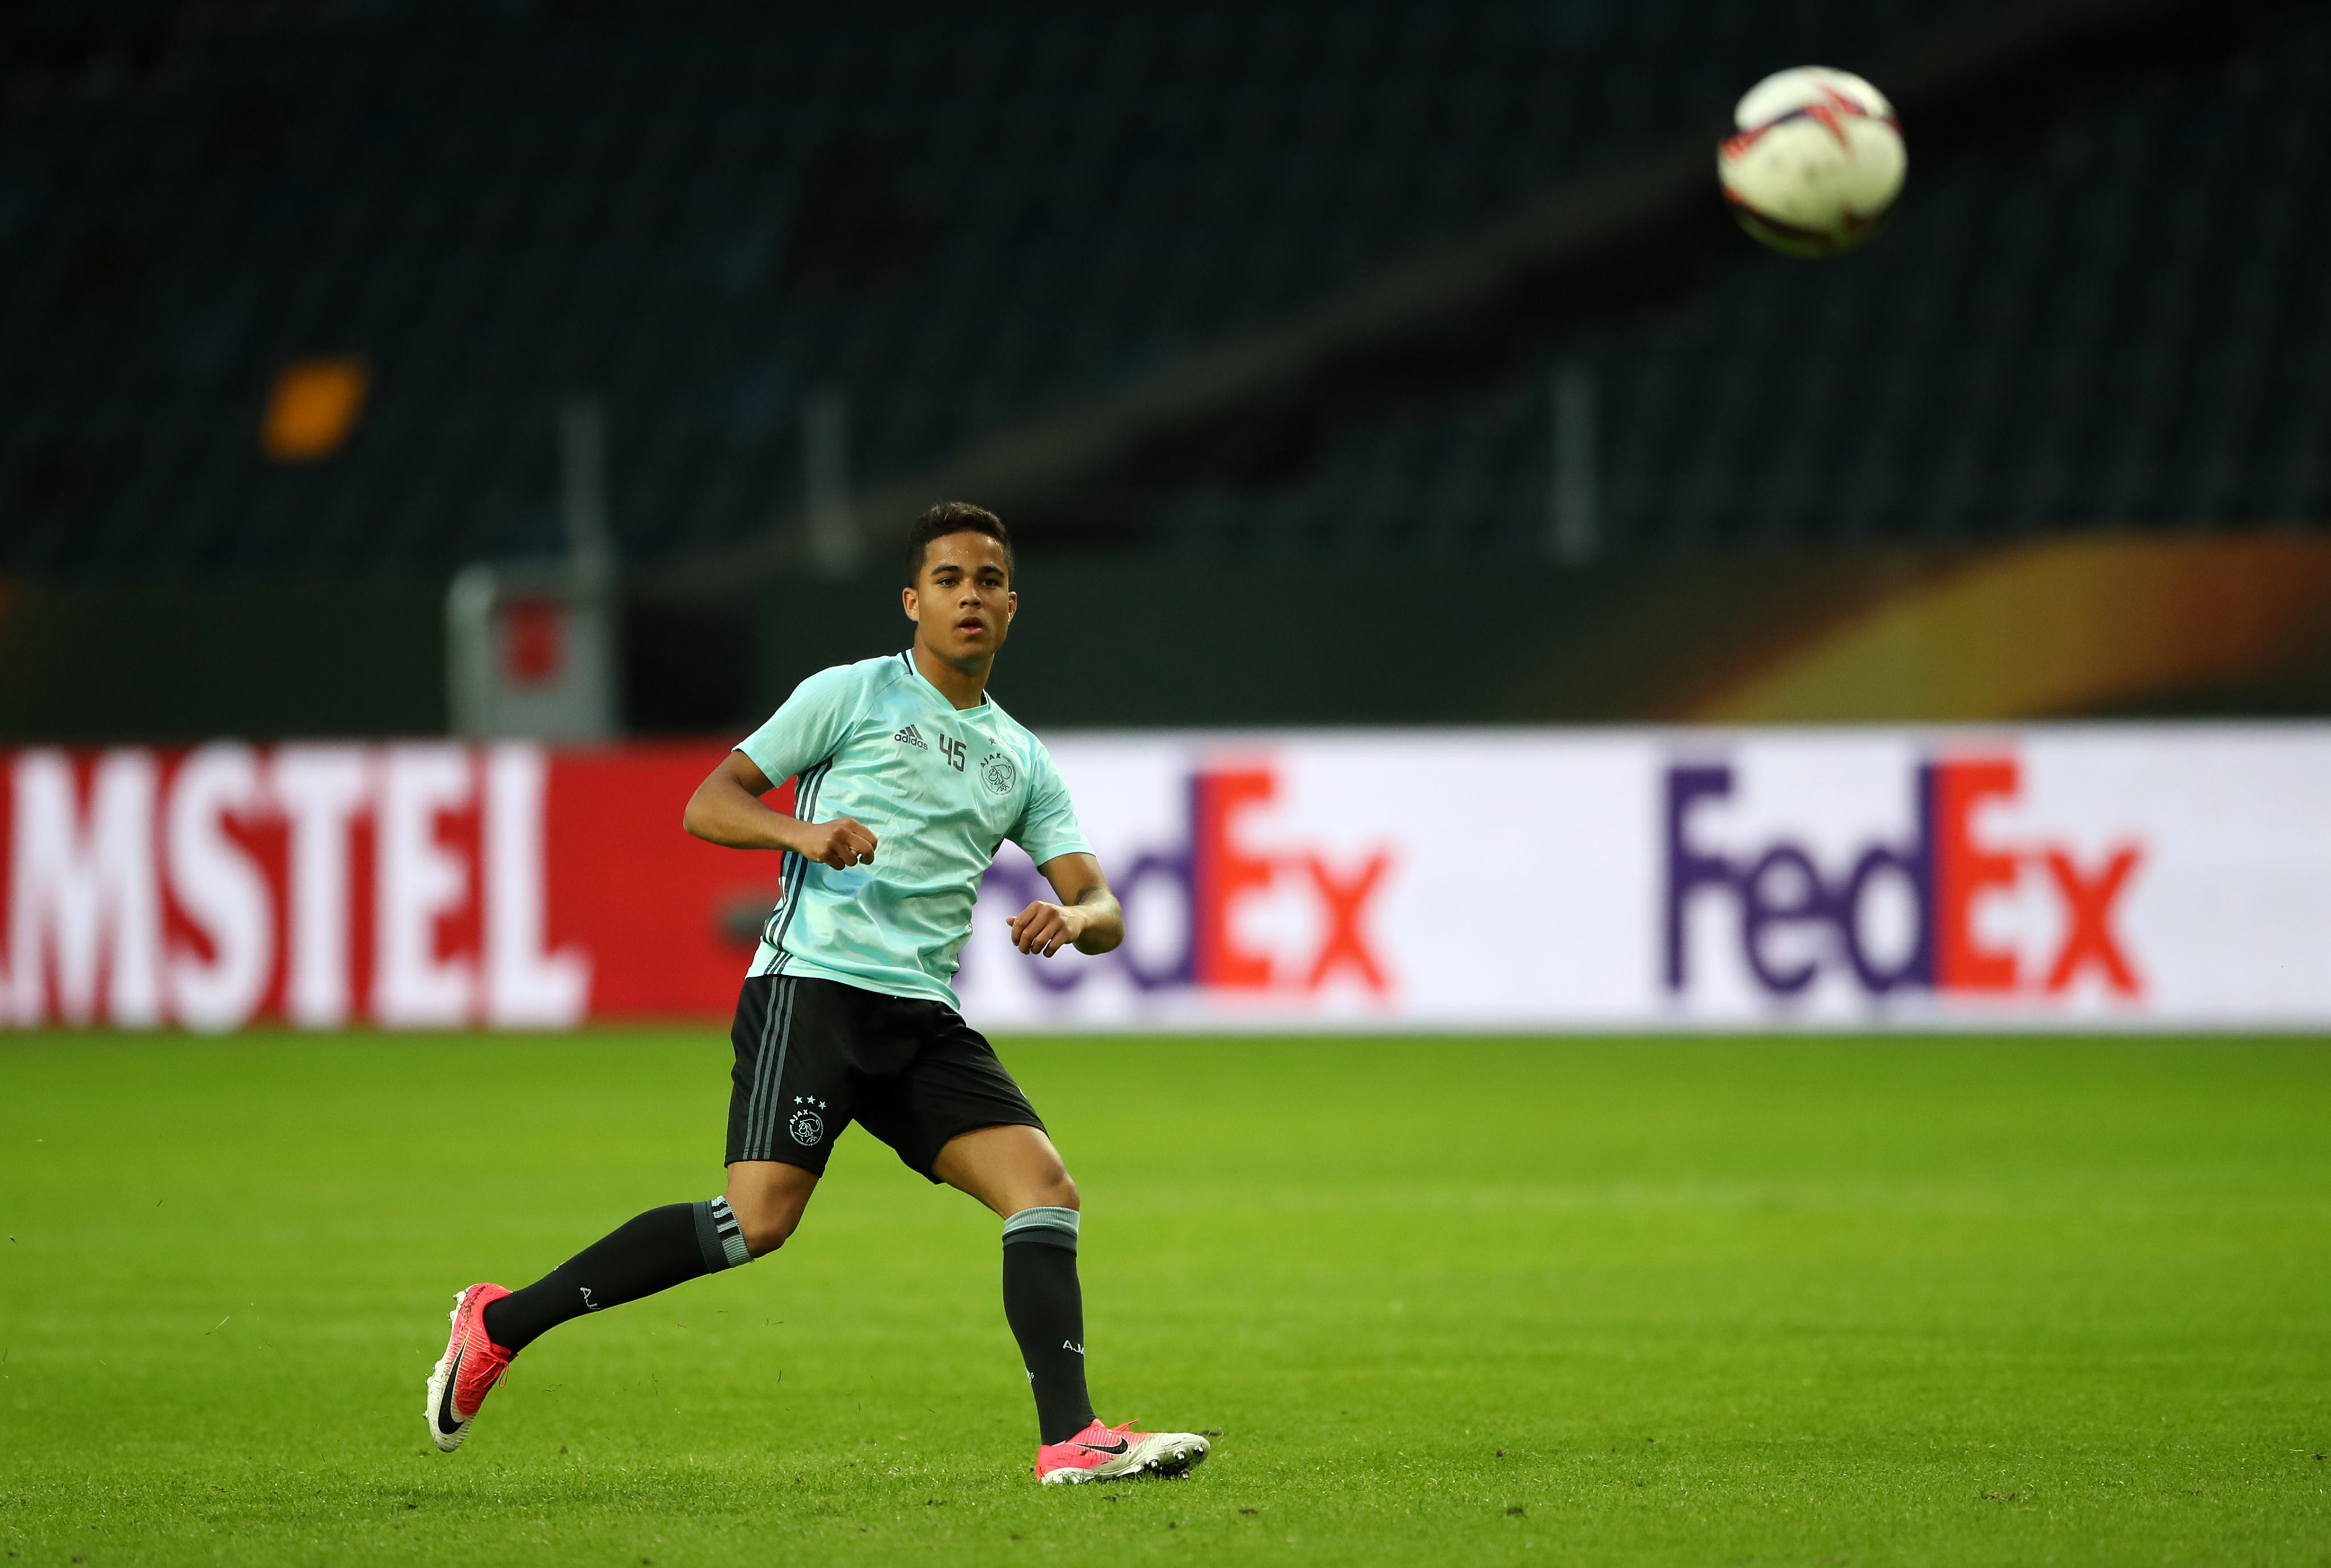 Ajax starlet Justin Kluivert open to future Arsenal move